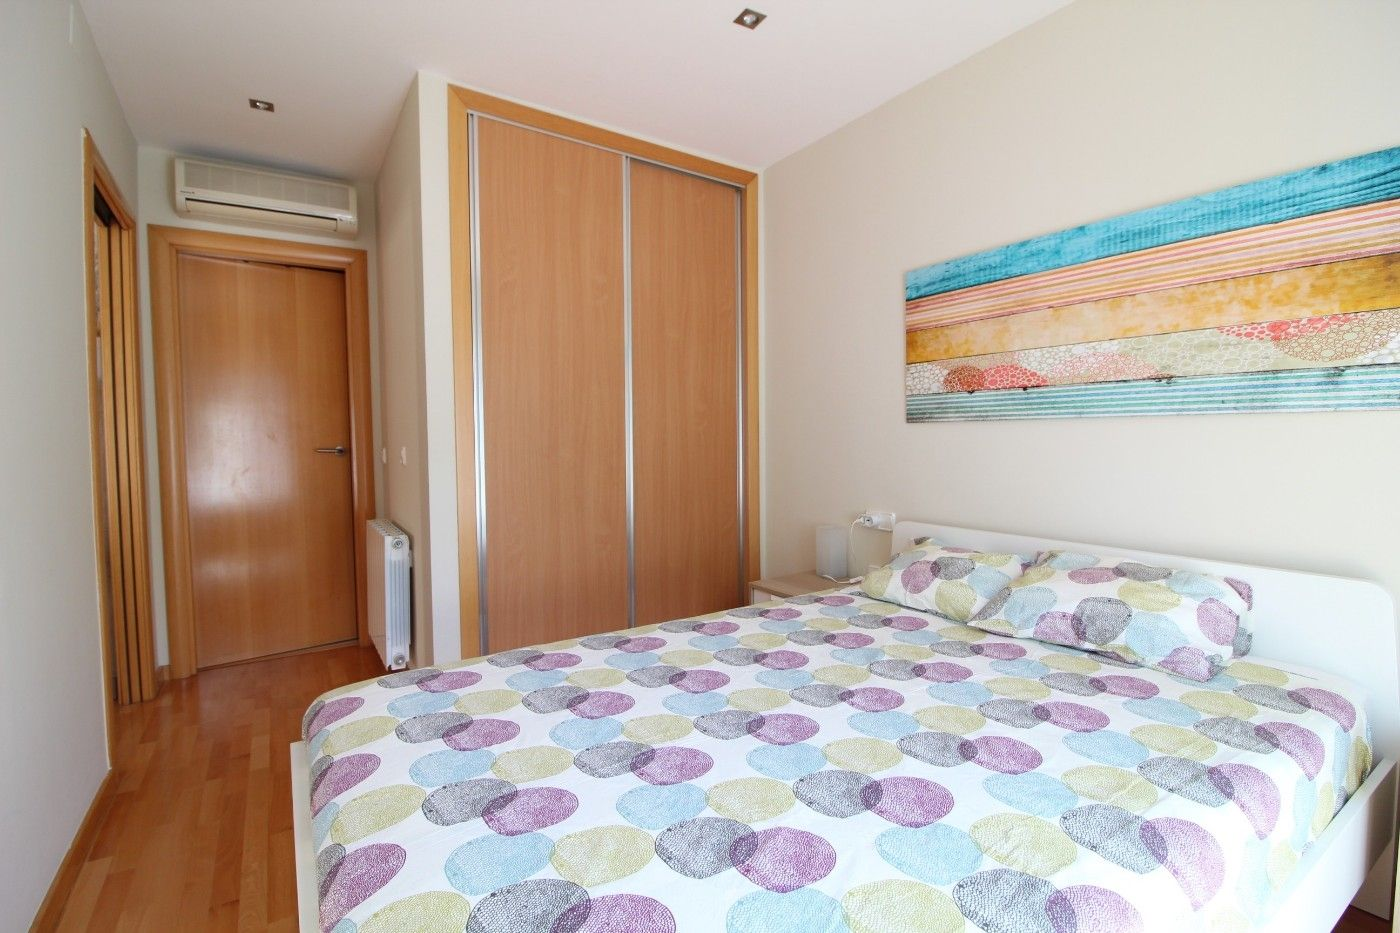 Holiday lettings Apartment in Carrer de les creus, 2. Primera linea